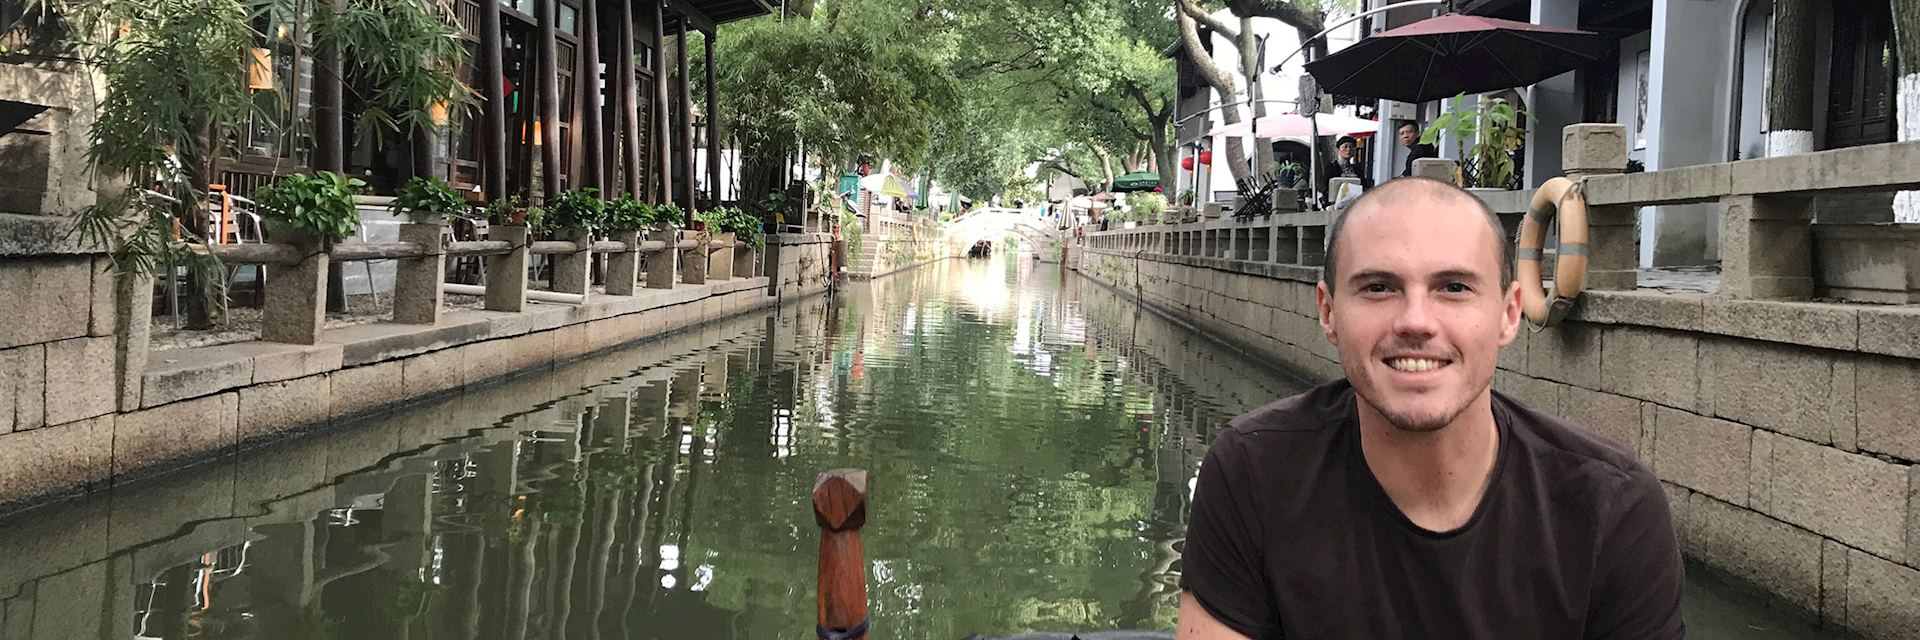 Rick visiting Suzhou, China